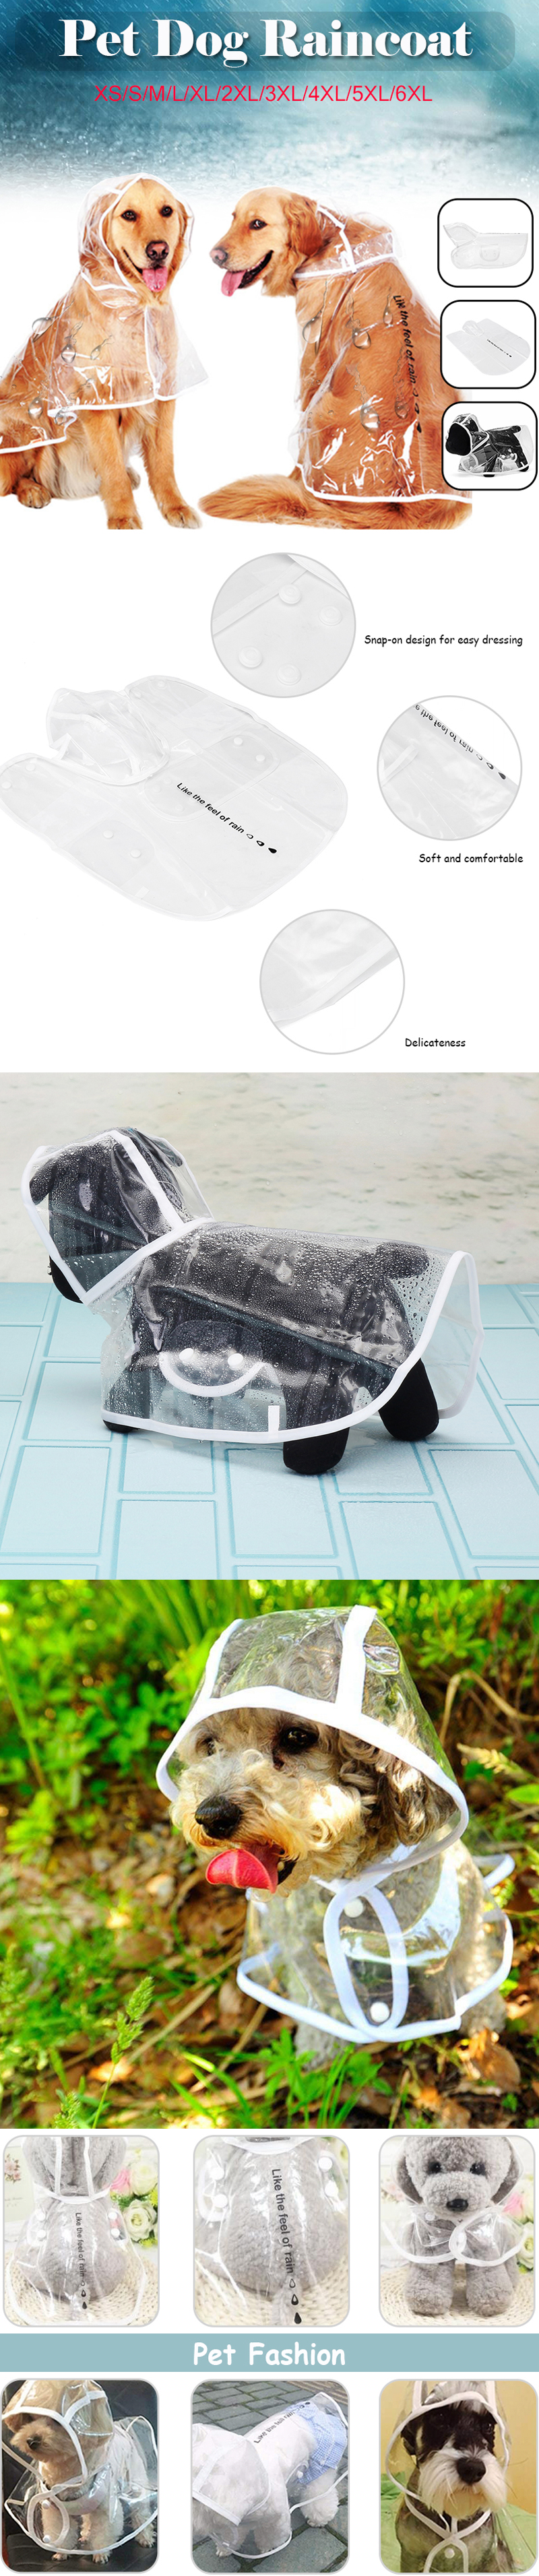 PU Pet Clothes Waterproof Light Dog Raincoat Transparent PVC Rain Coat With Hood